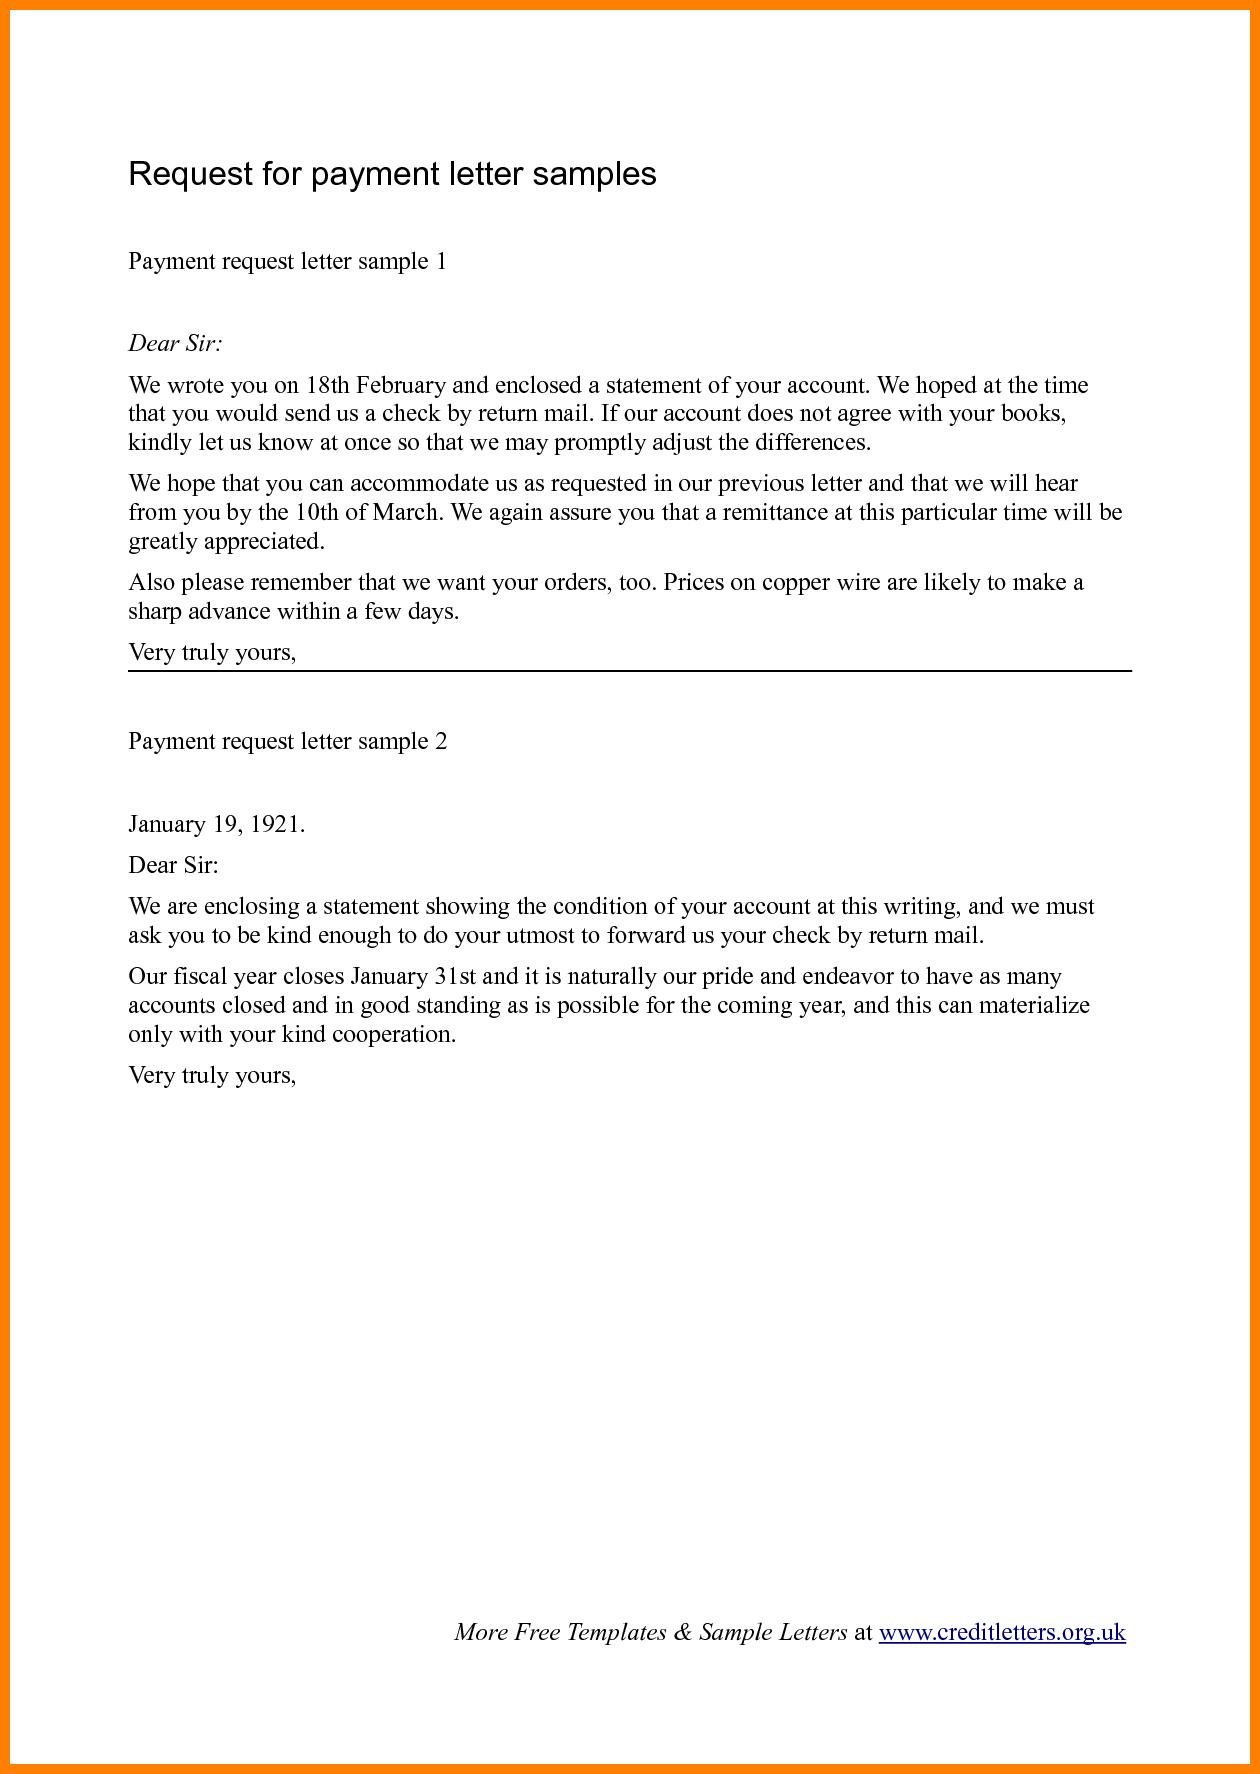 Refund Demand Letter Template - Requisition Letter format Request Letter for Advance Payment Against